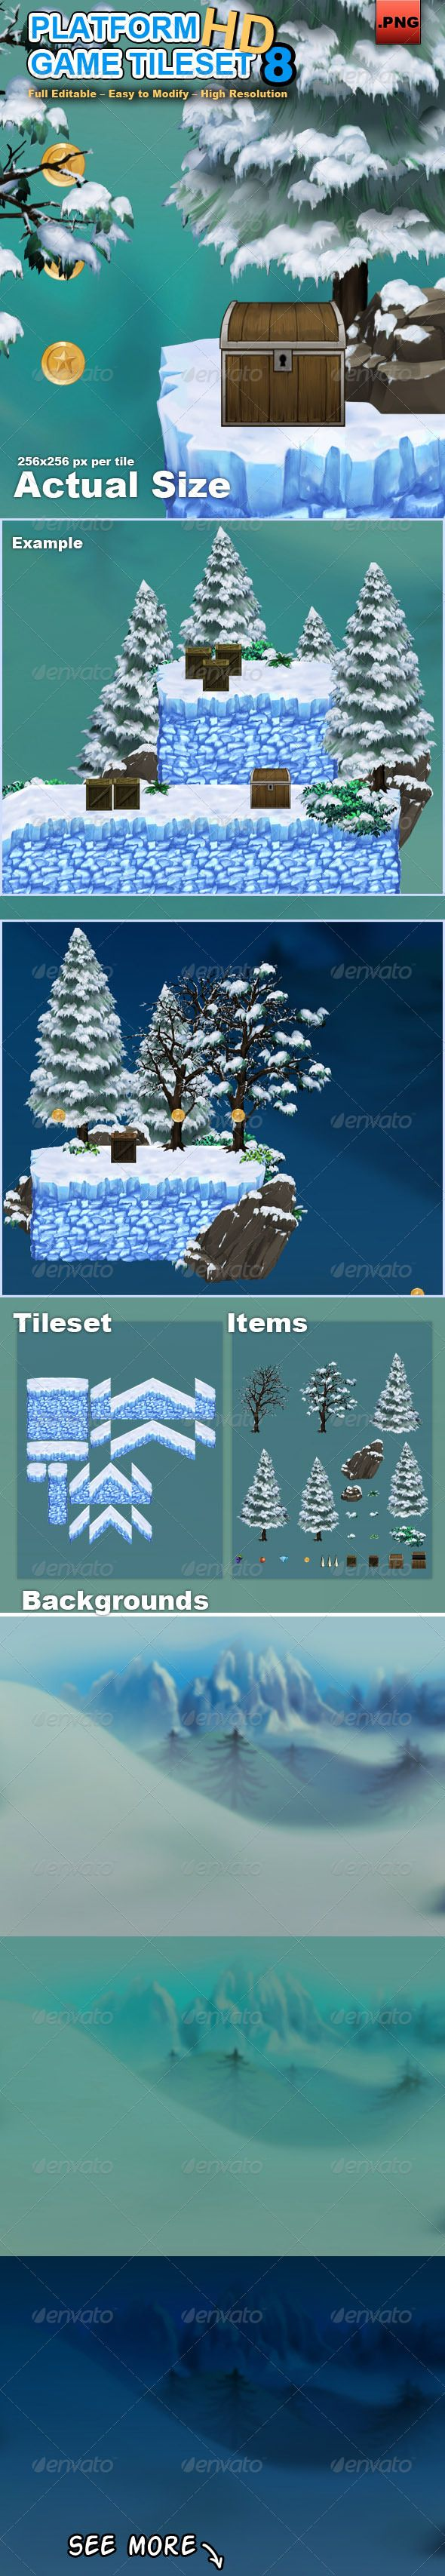 Platform Game Tileset 8 HD Snow